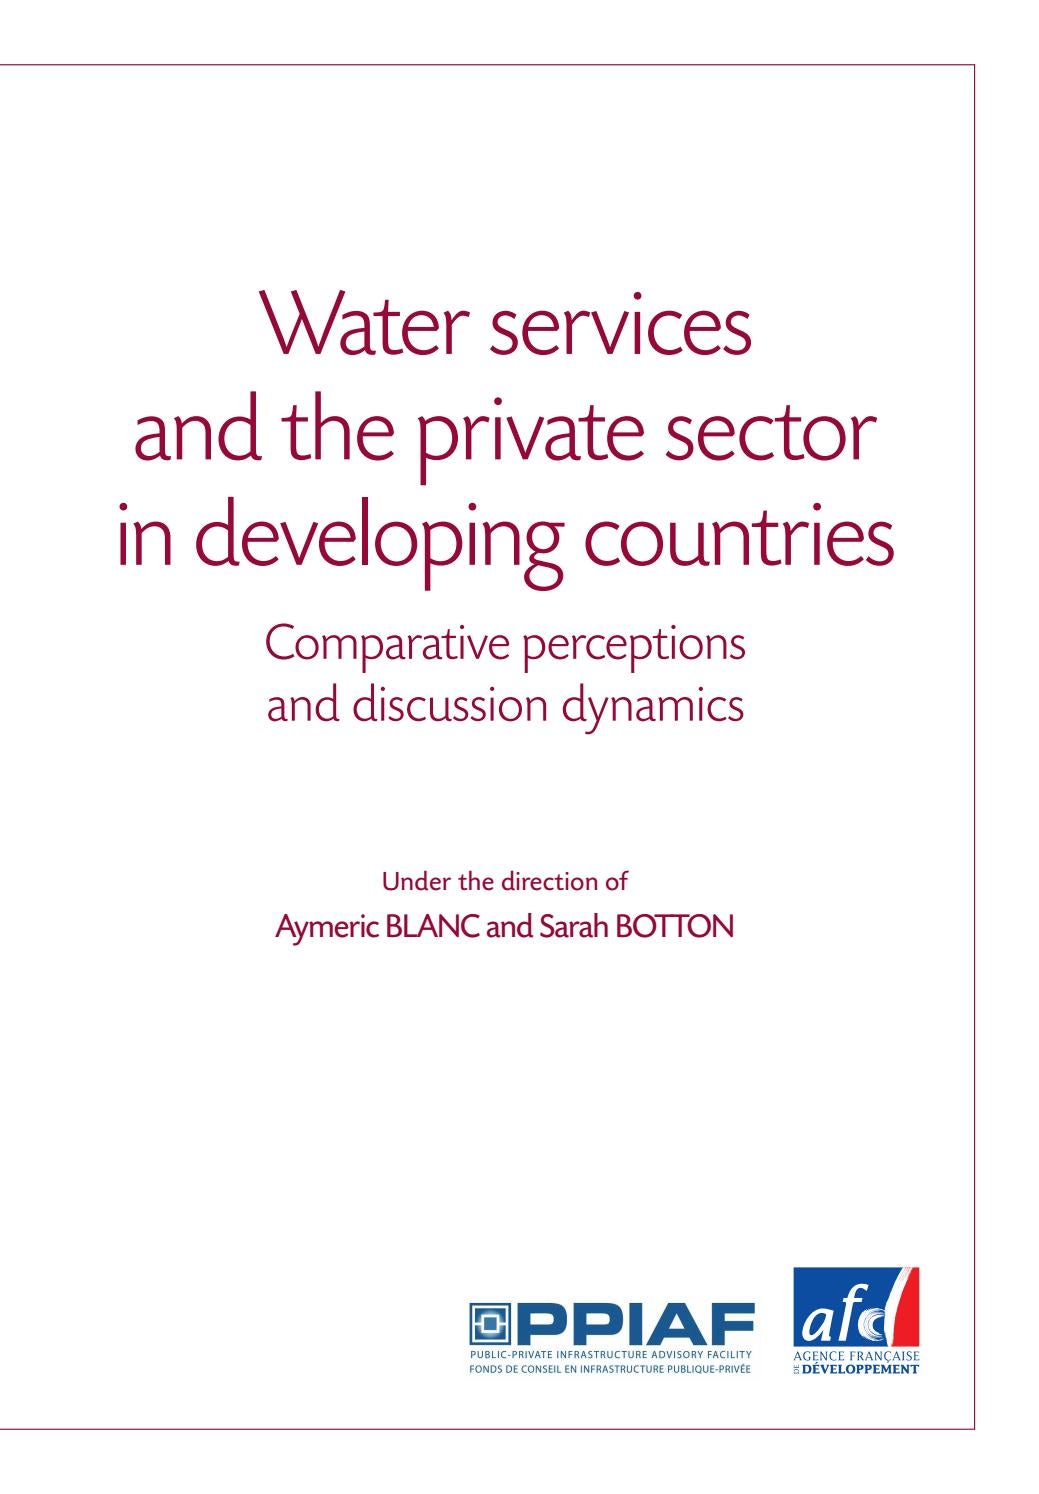 Cash Pooling Y Precios De Transferencia Water Services And The Private Sector In Developing Countries By